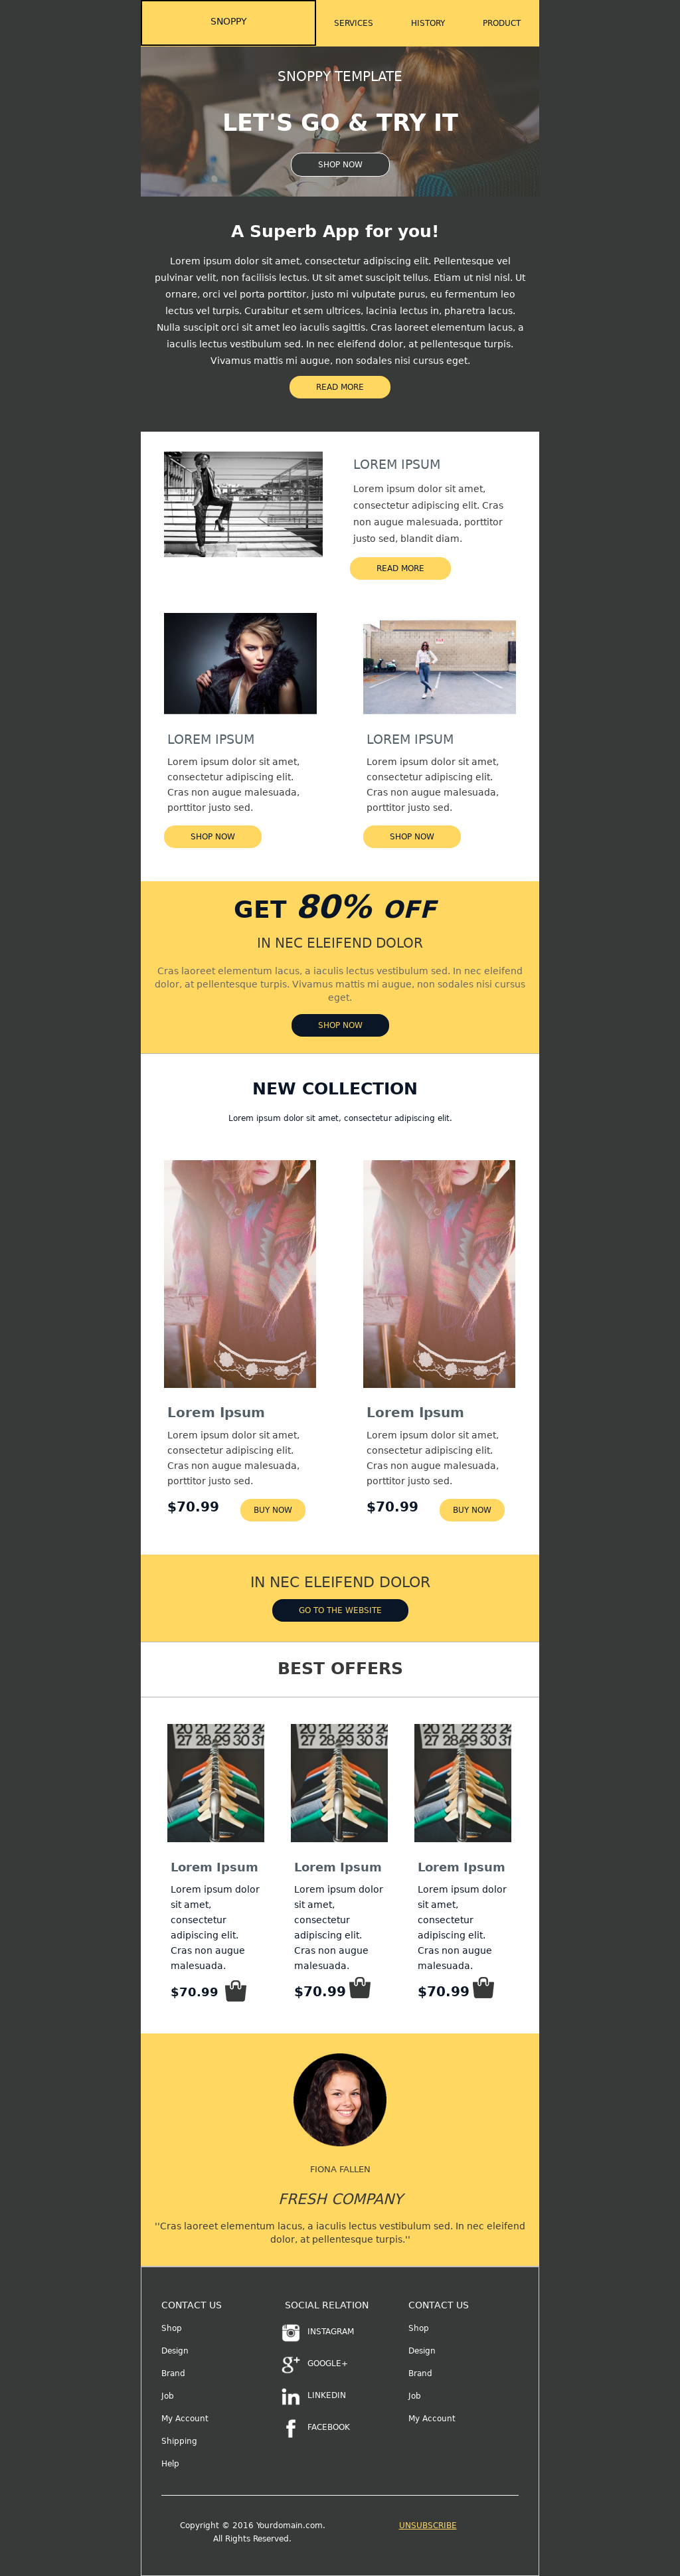 E-commerce fashion product promotional email template